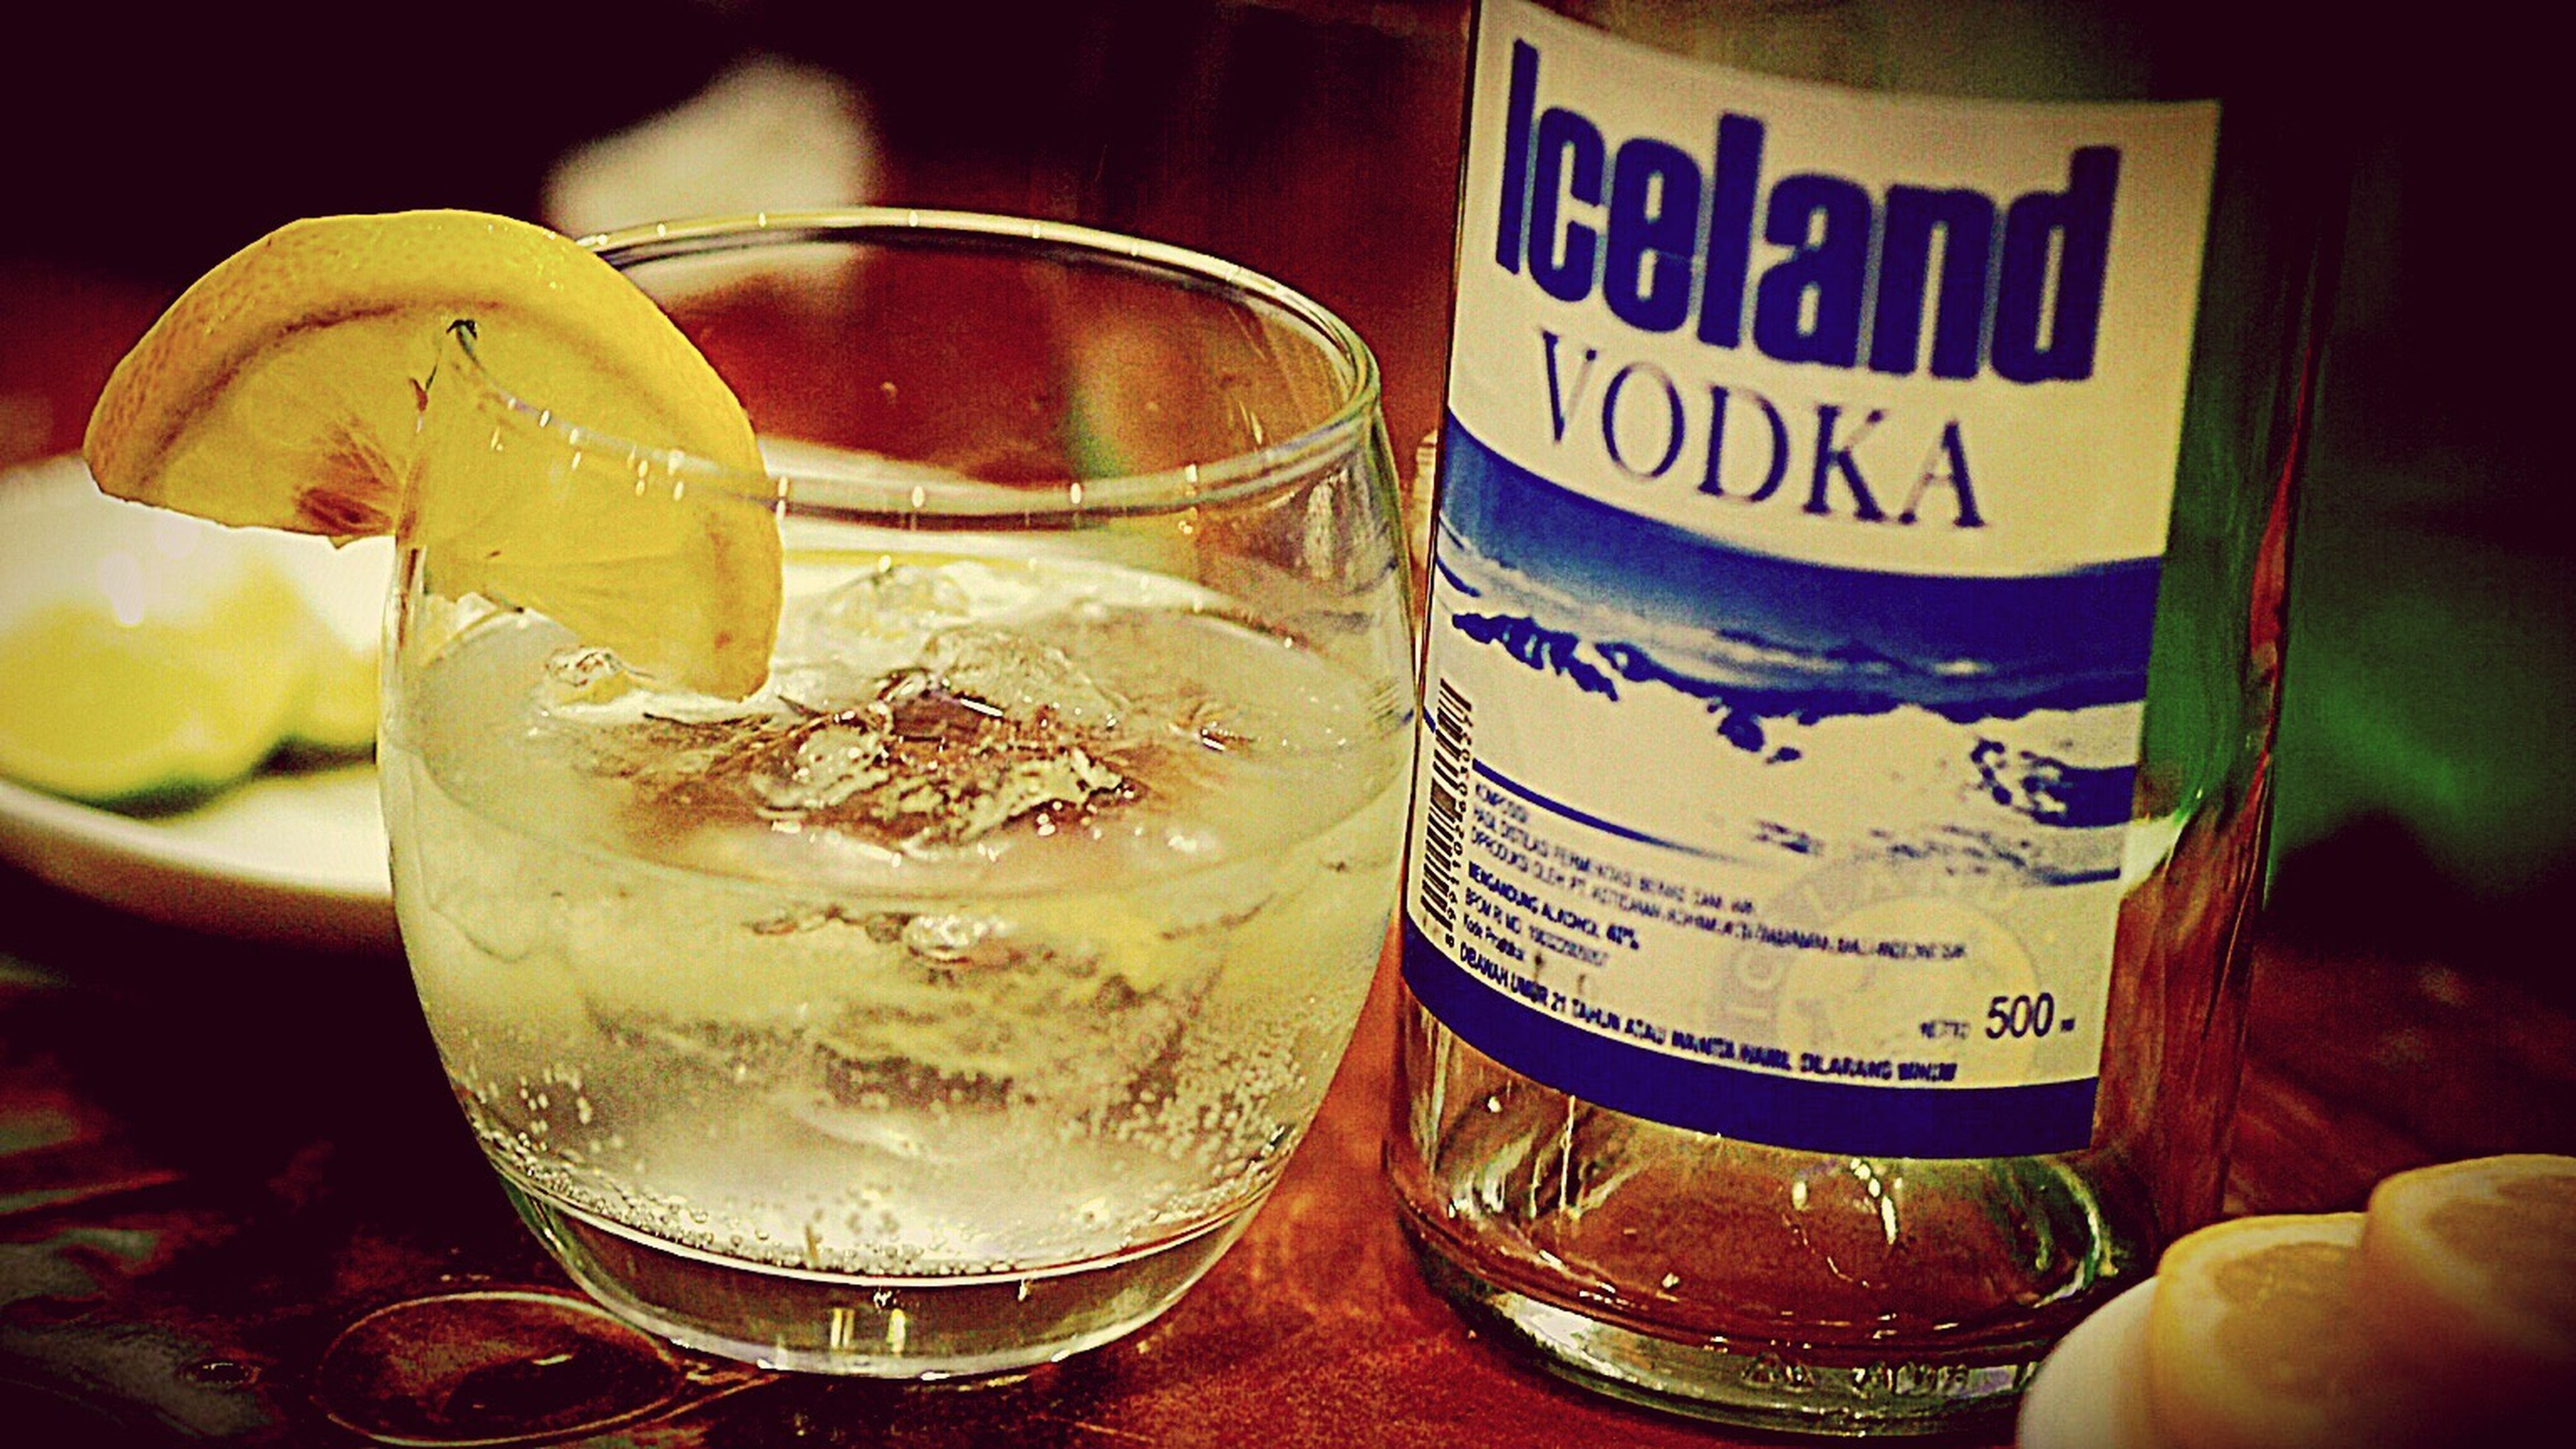 Drink , must try iceland vodka with water gas and lime ....,